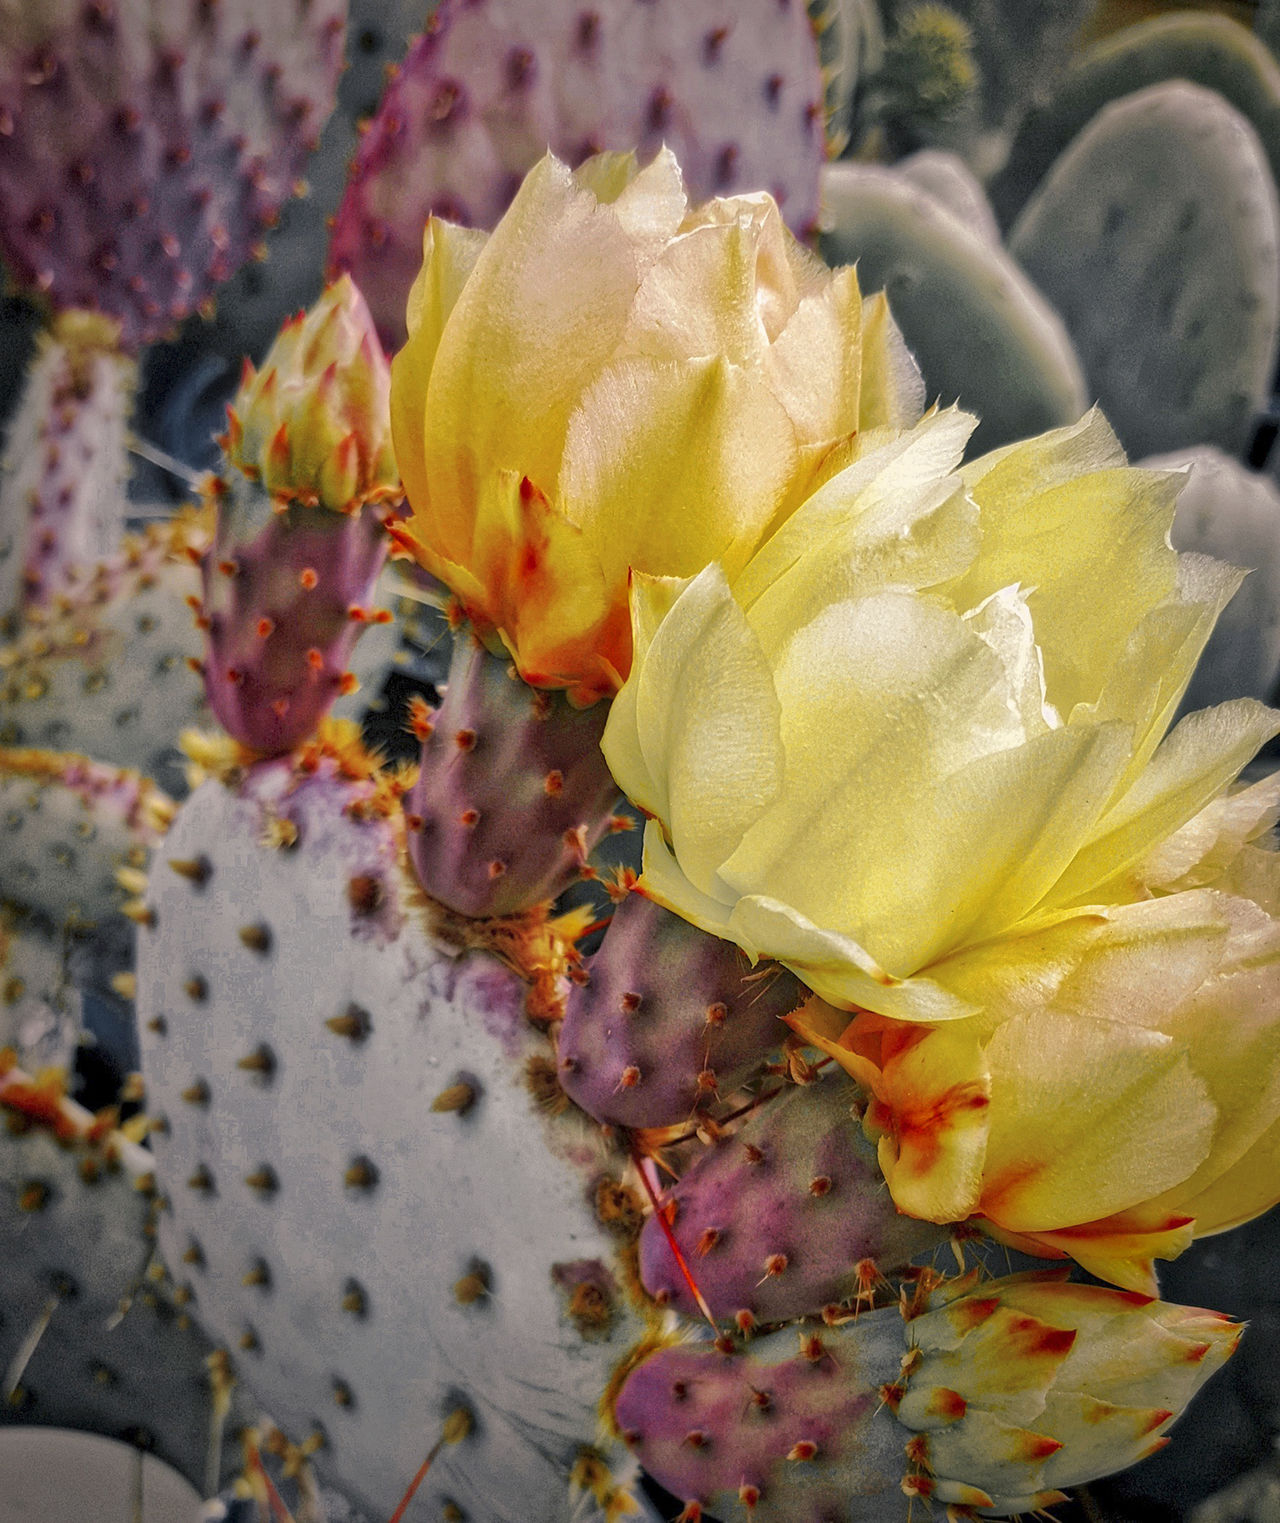 Best EyeEm Shot Cacti Cacti Flowers Close-up Prickly Pear Cactus Rich Colors Yellow